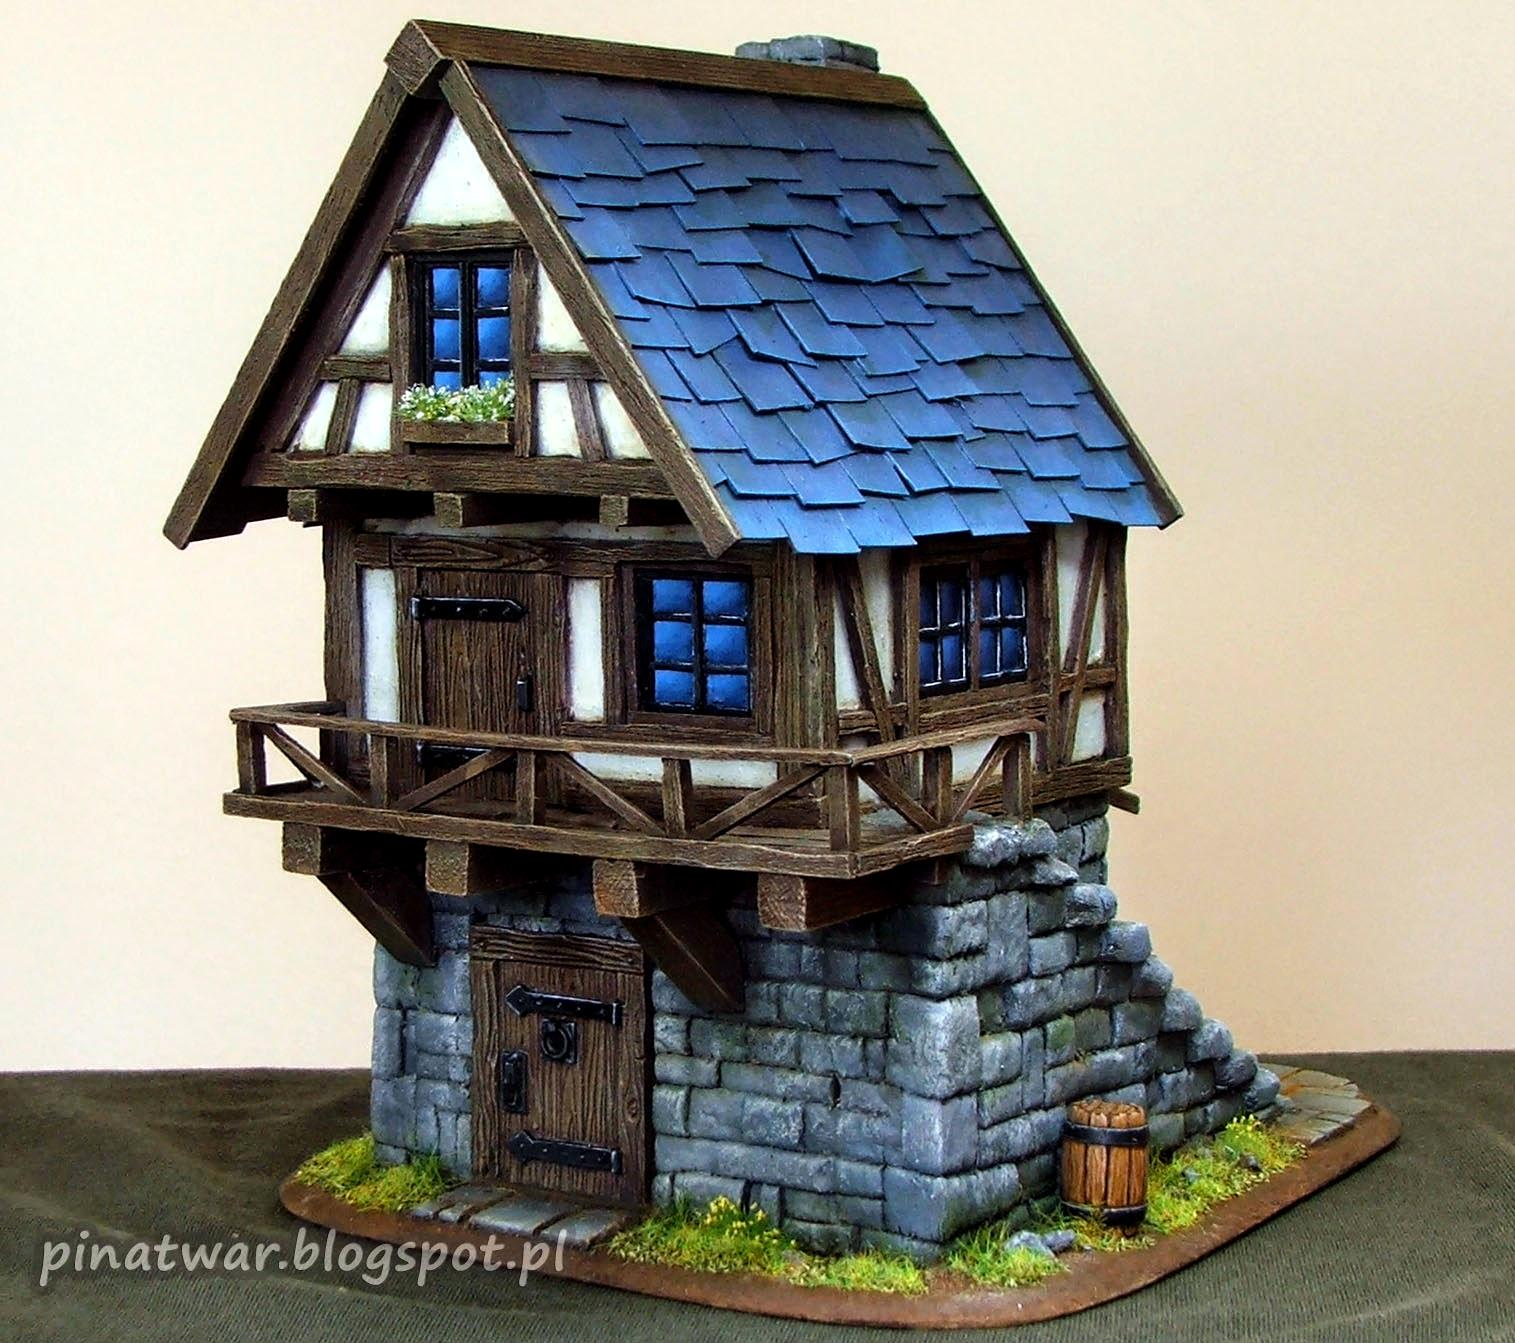 Blacksmith, Forge, House, Terrain, Village